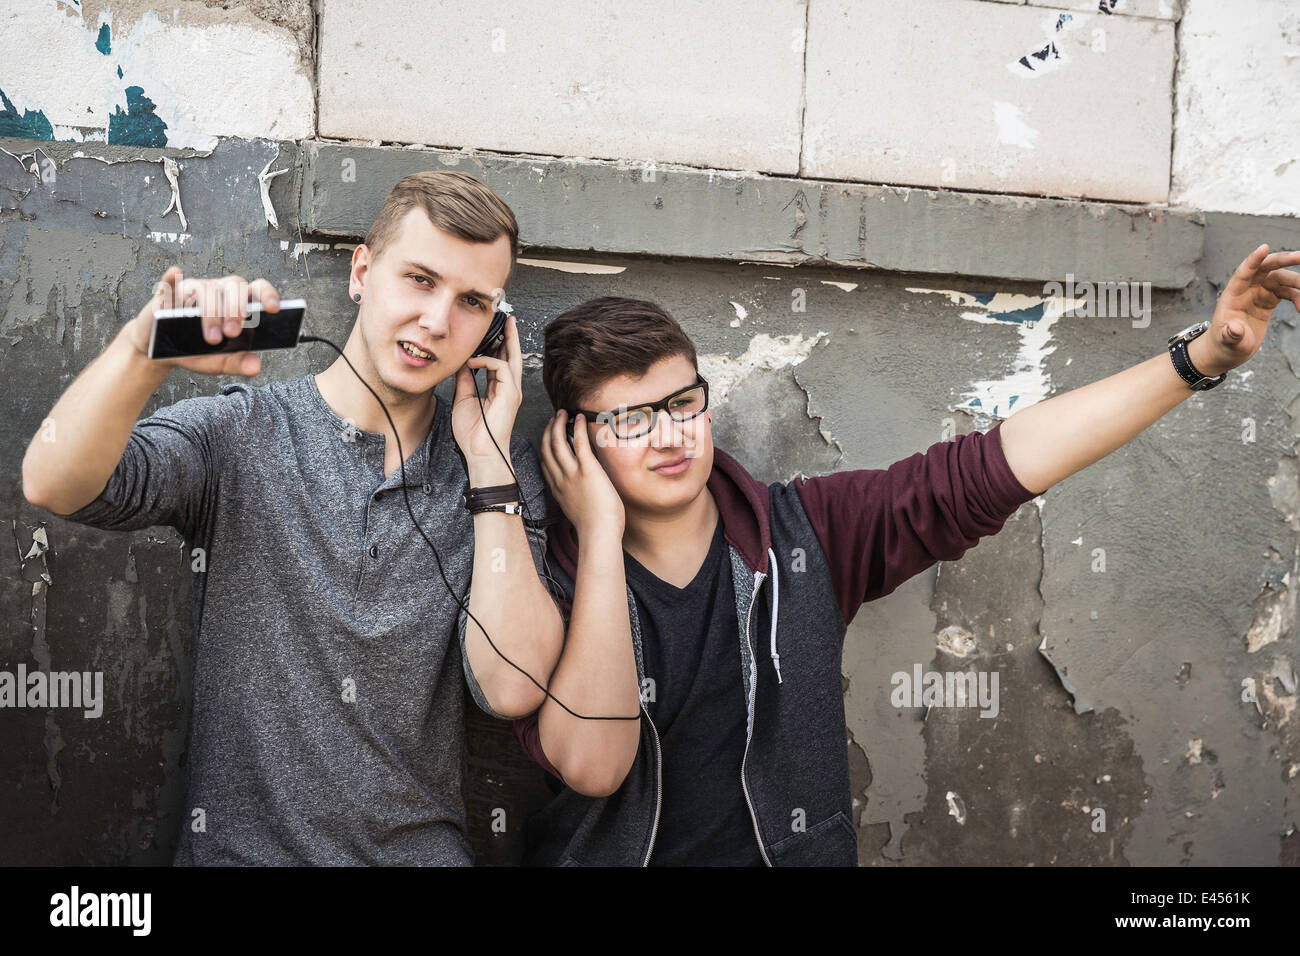 Teenage boys listening to music by abandoned building - Stock Image